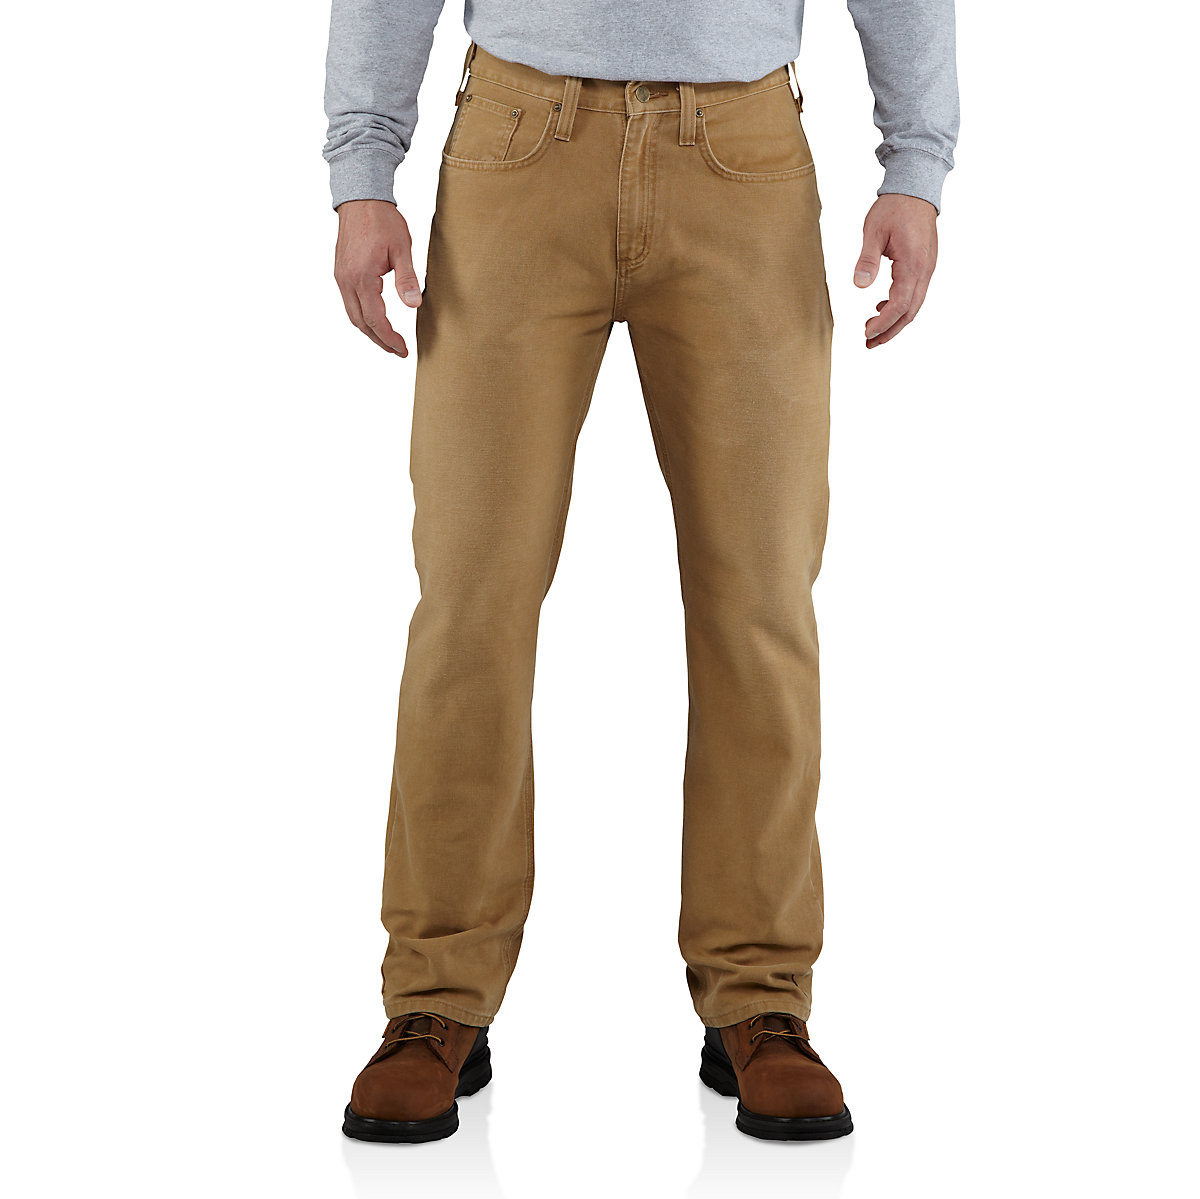 Best Mens Jeans For Big Thighs